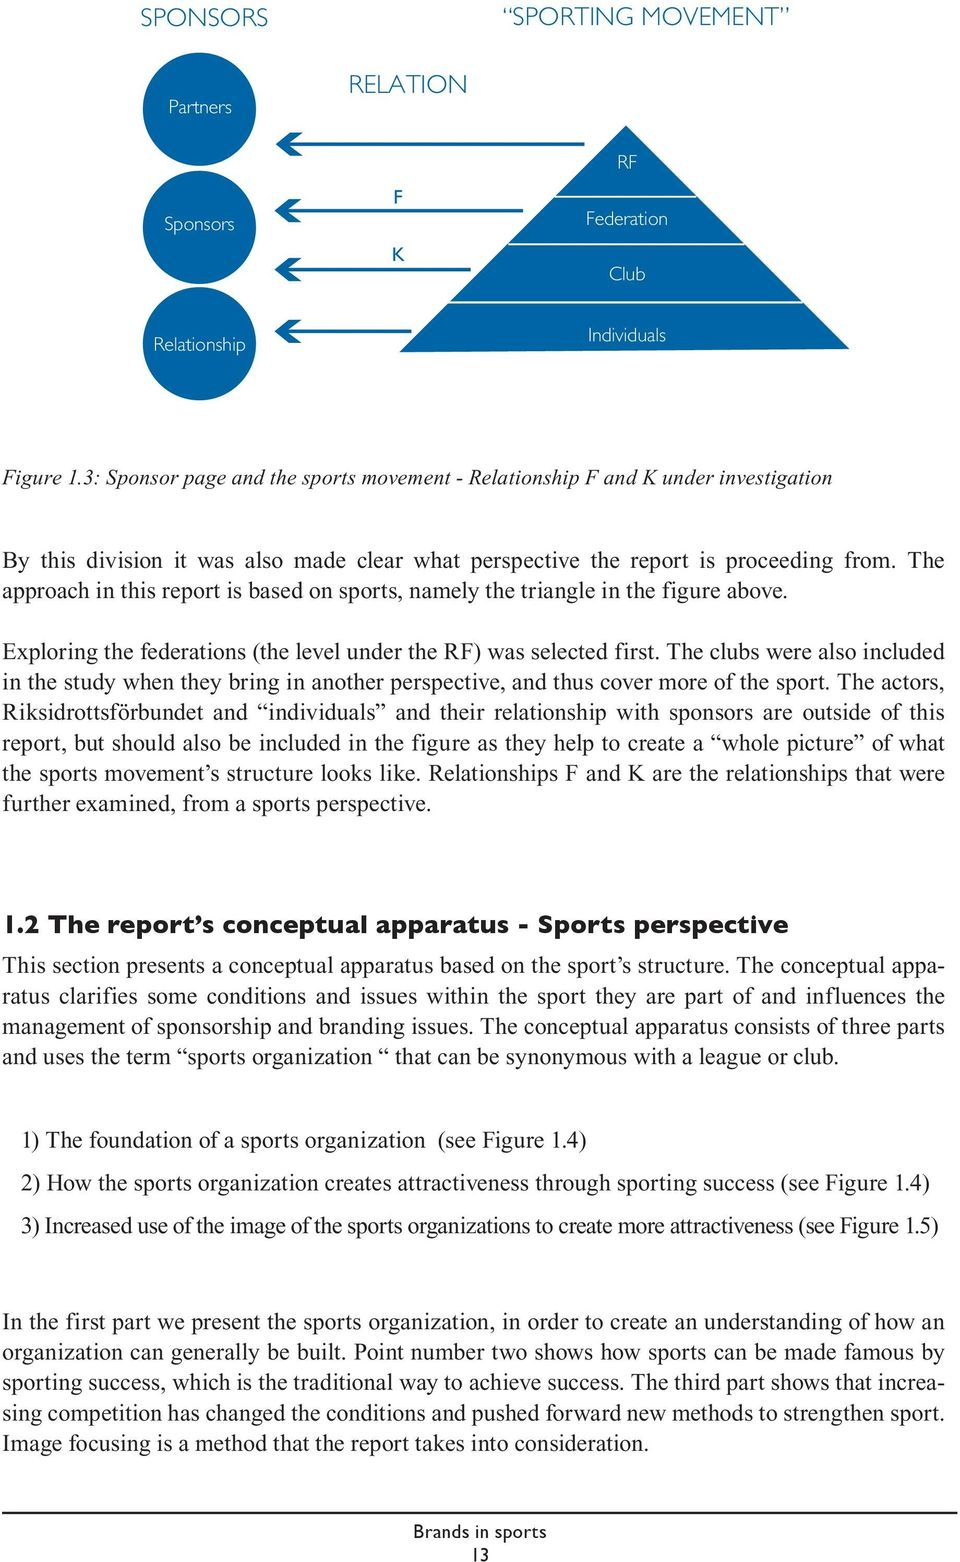 The approach in this report is based on sports, namely the triangle in the figure above. Exploring the federations (the level under the RF) was selected first.